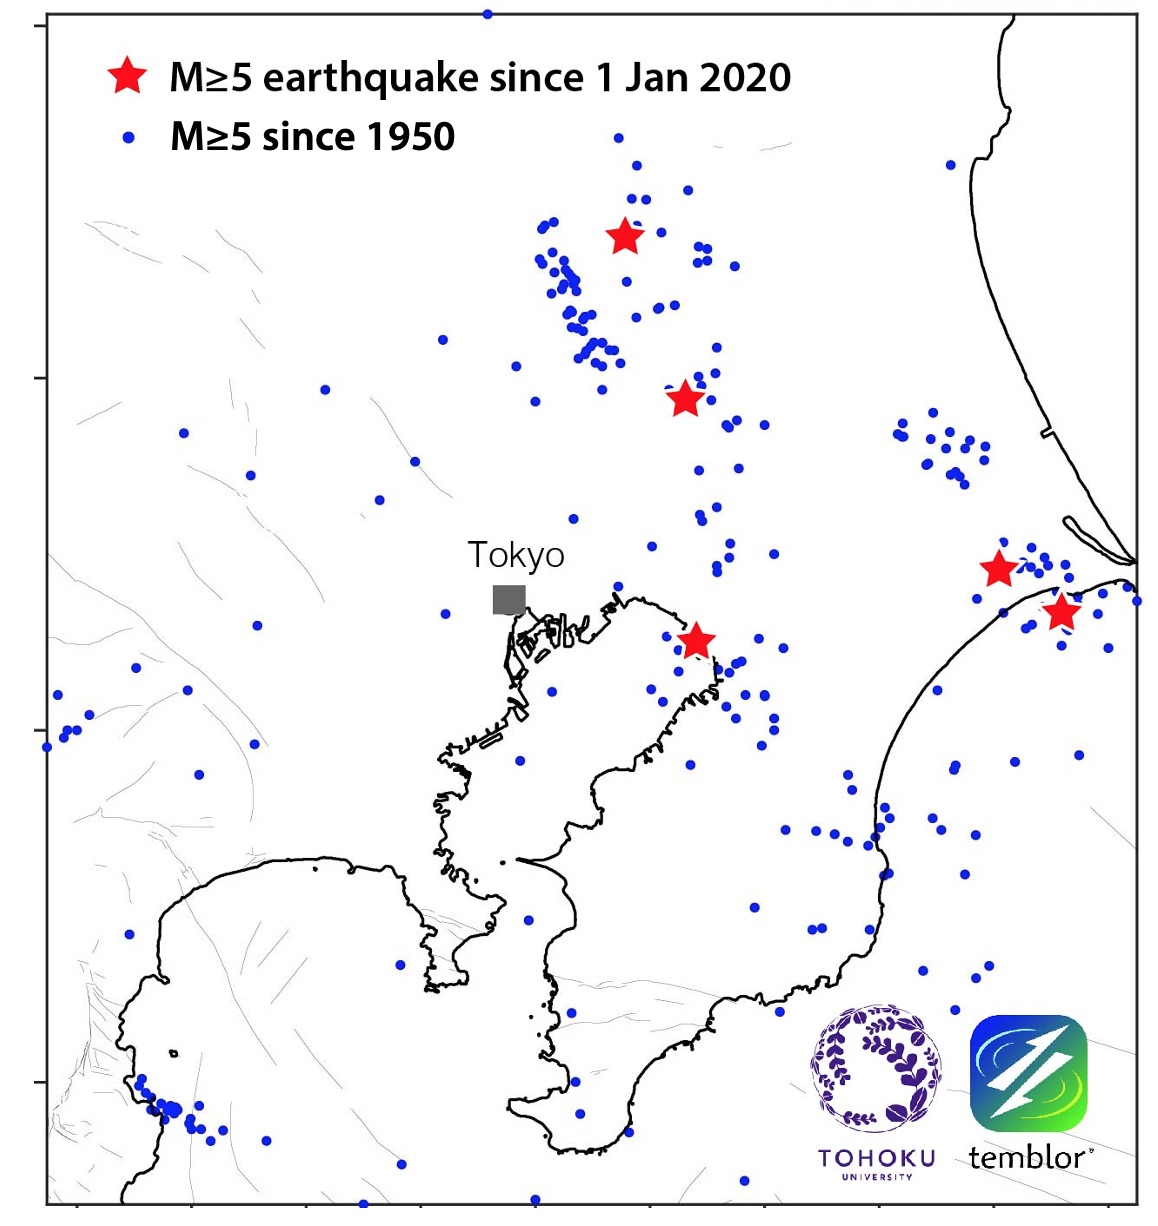 Six magnitude-5.0+ earthquakes have struck in the Tokyo metro region since 1 April, 2020. The five quakes closest to Tokyo are show here as red stars, along with the epicenters of past earthquakes (blue dots).